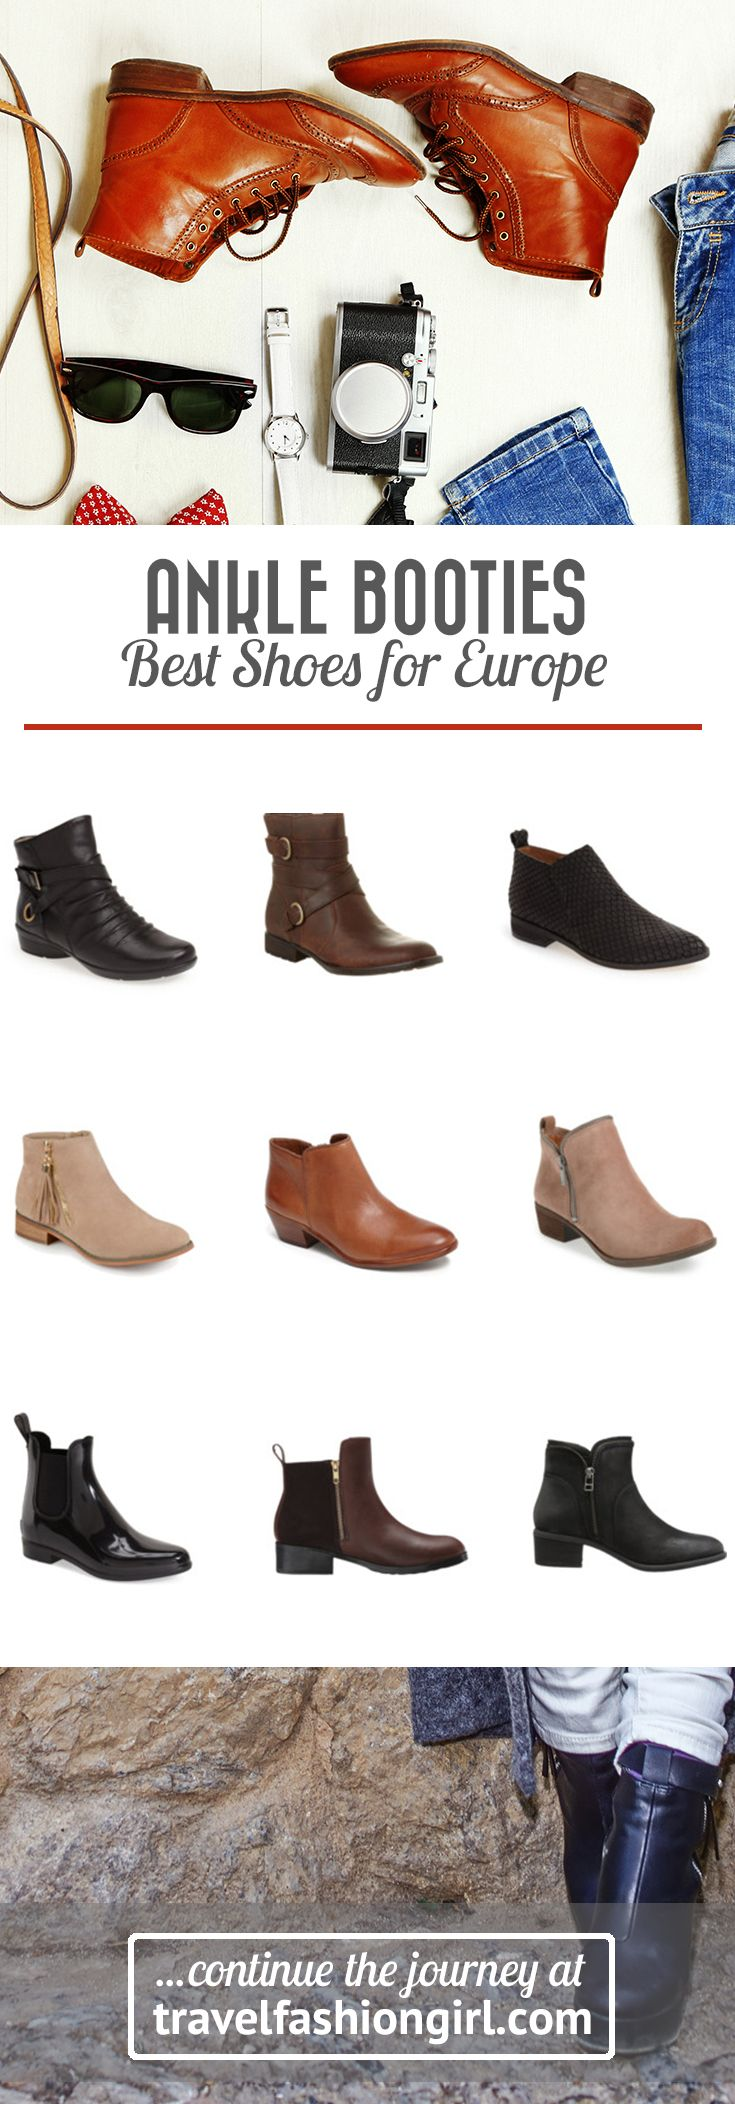 When A Reader Asked For The Best Shoes Travel To Europe In Spring Answer Was Clear Ankle Booties Want See Our Top 13 Picks